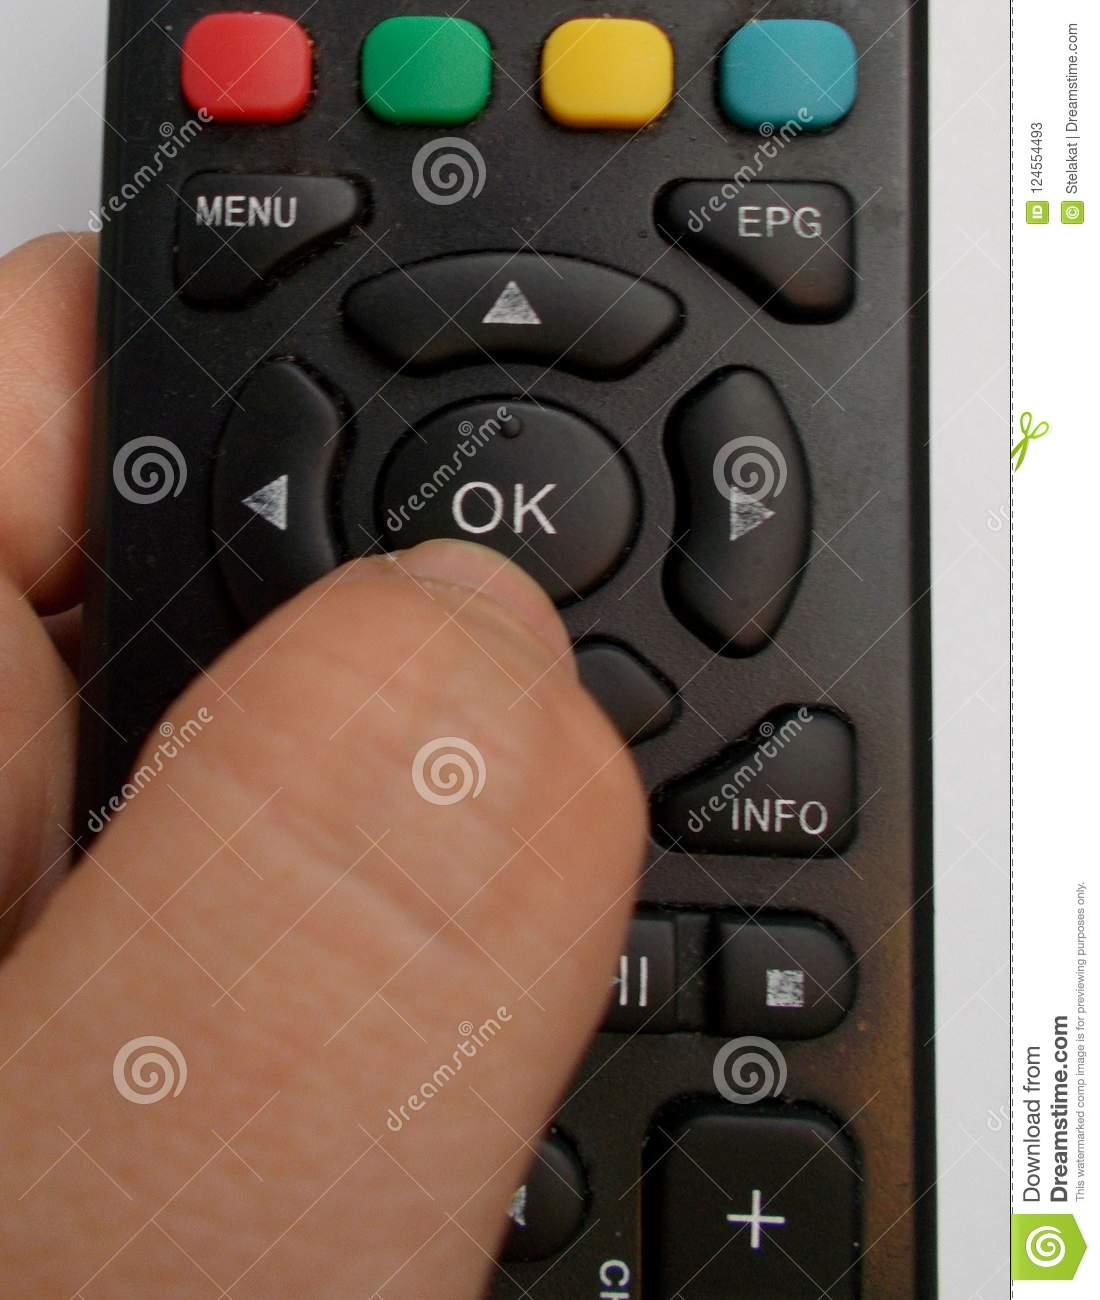 TV remote control stock image  Image of television